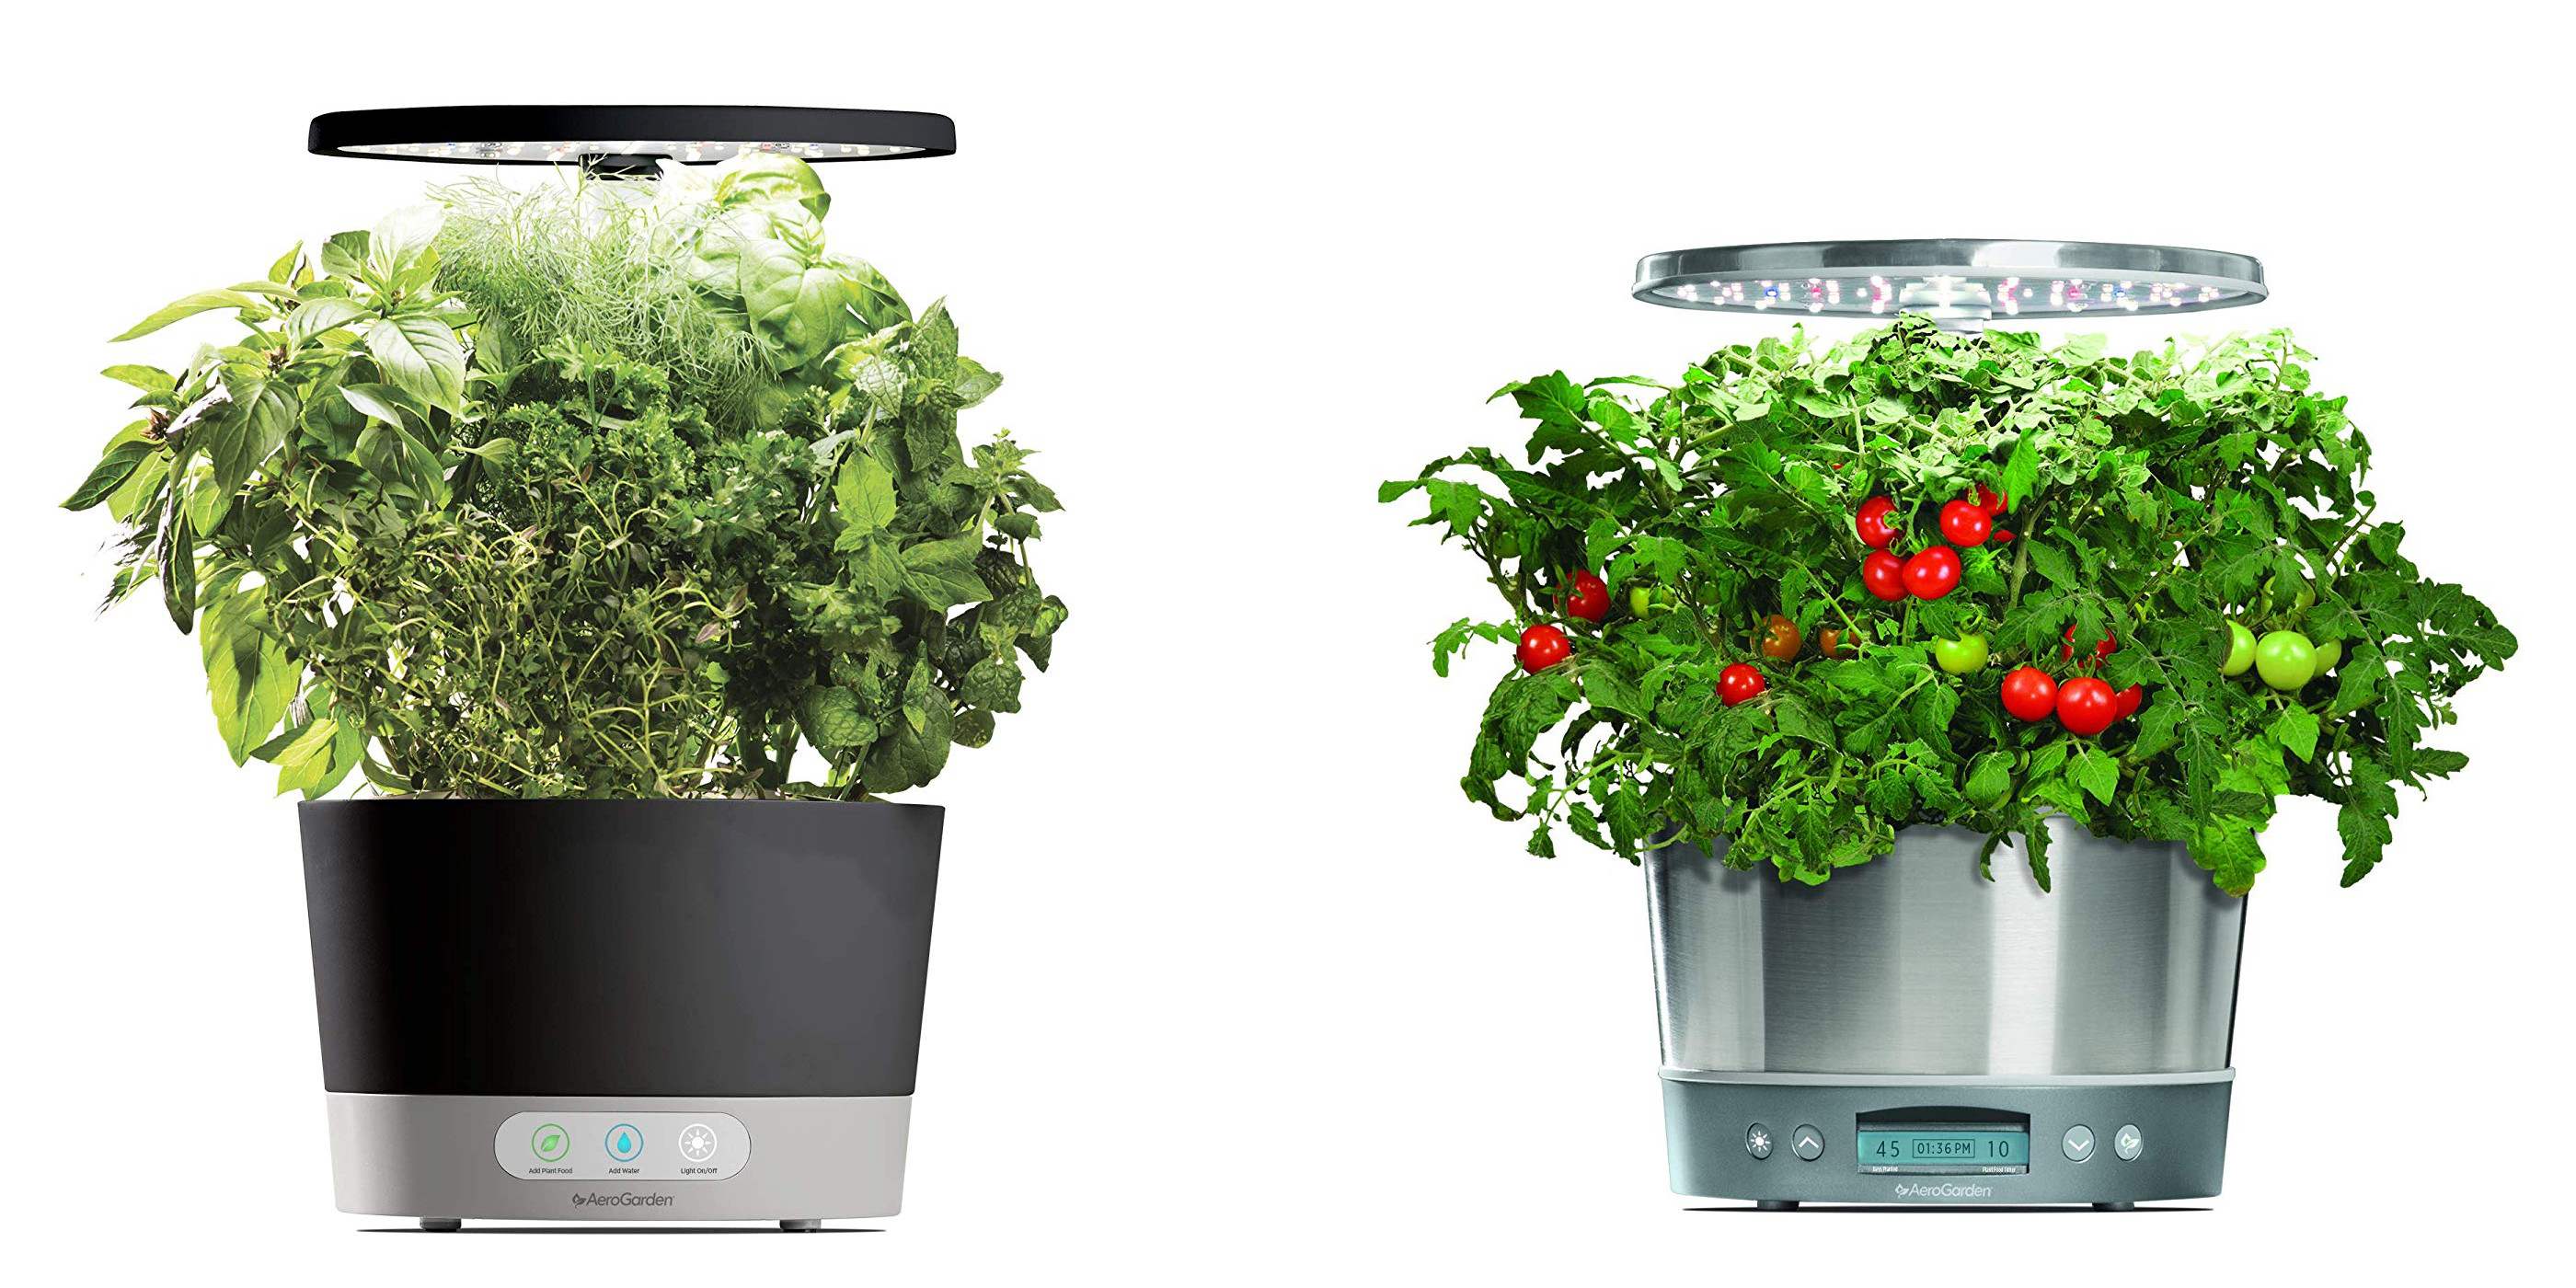 Amazon offers up to 50% off AeroGarden planter kits for today only w/ deals from $75